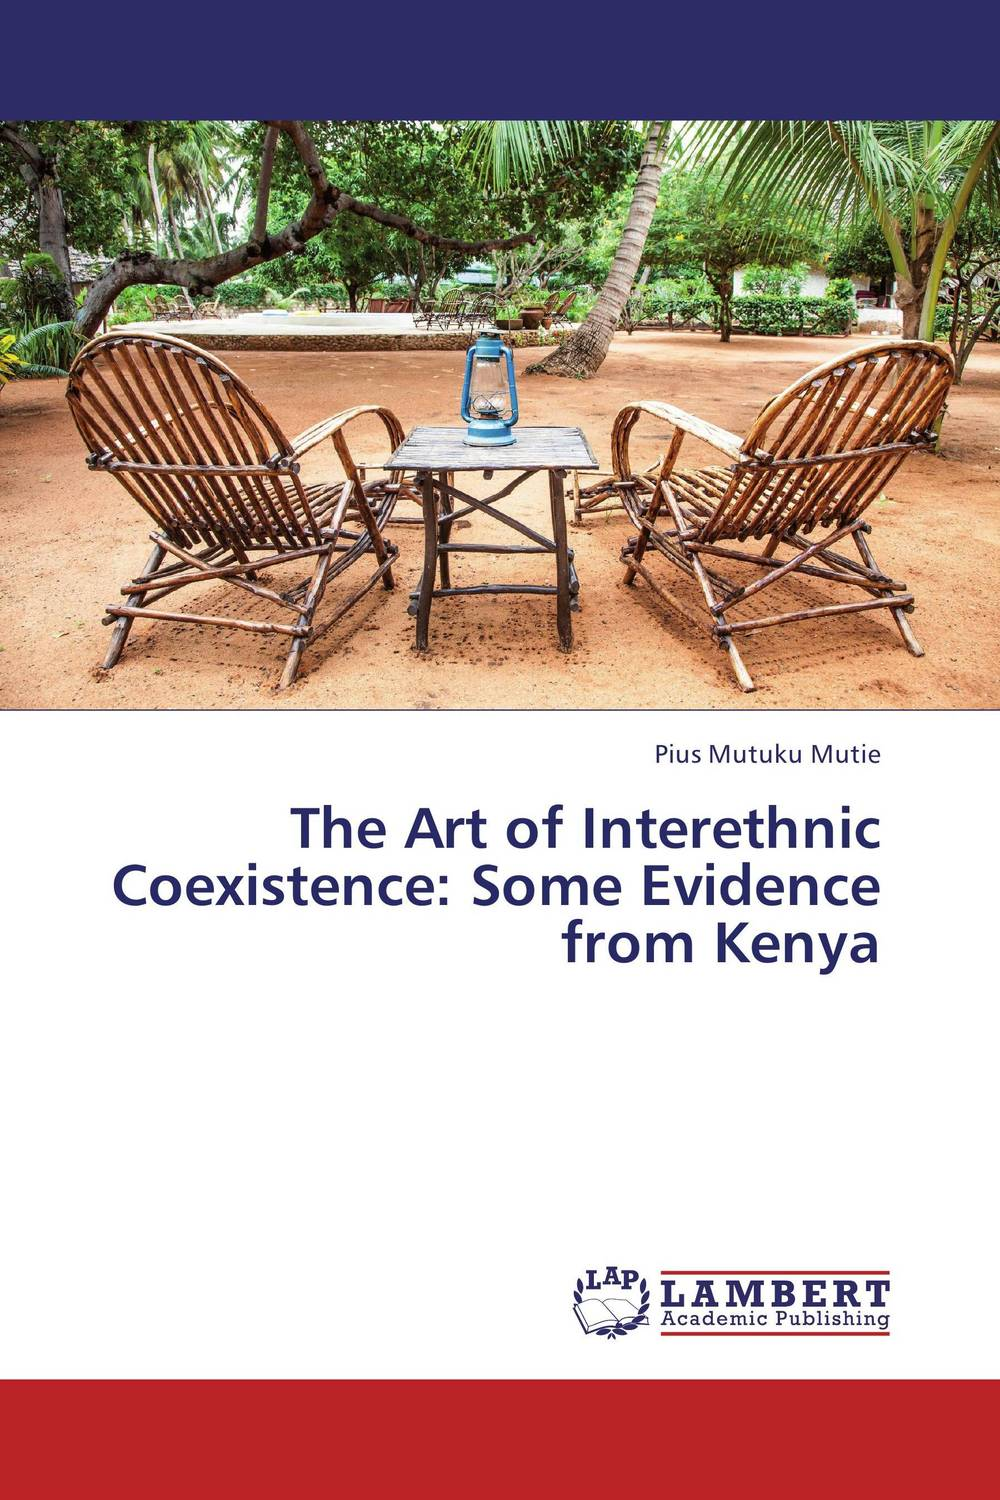 The Art of Interethnic Coexistence: Some Evidence from Kenya